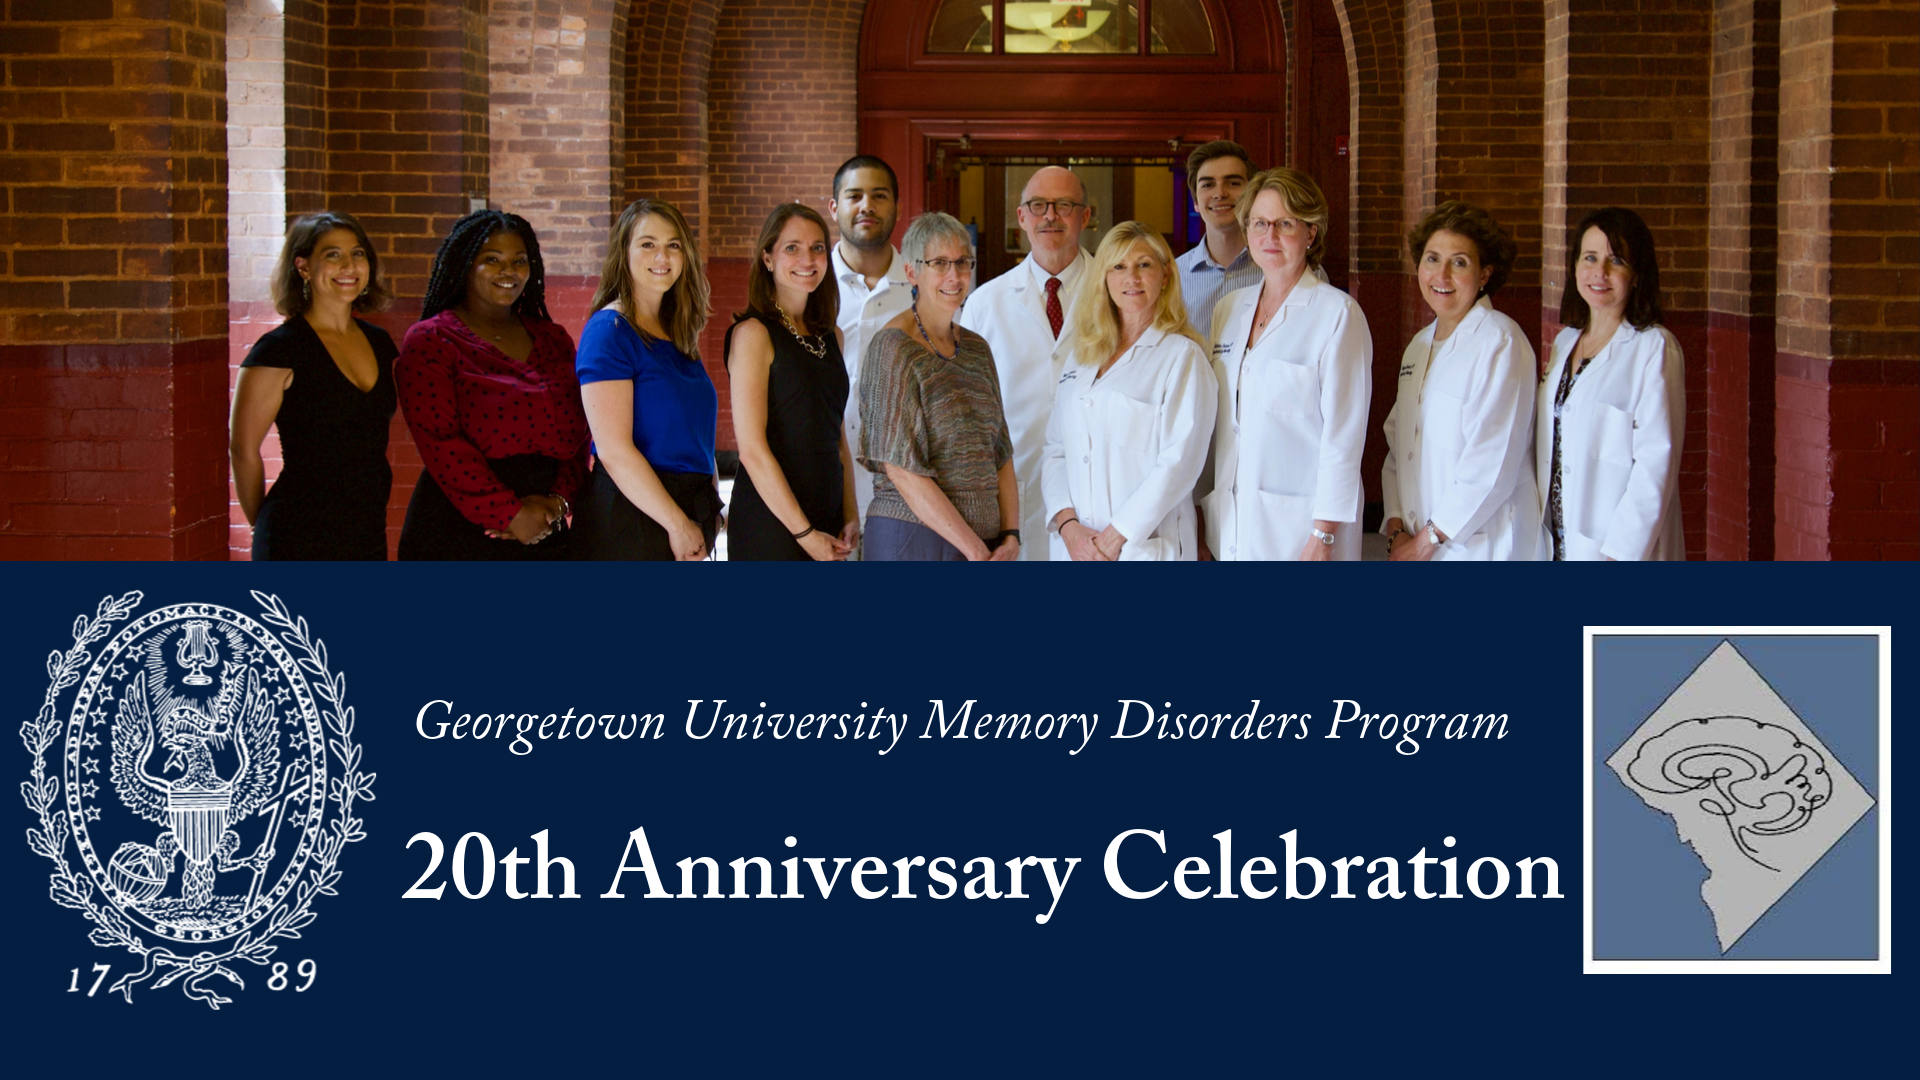 A photo of the Georgetown University Memory Disorders Program